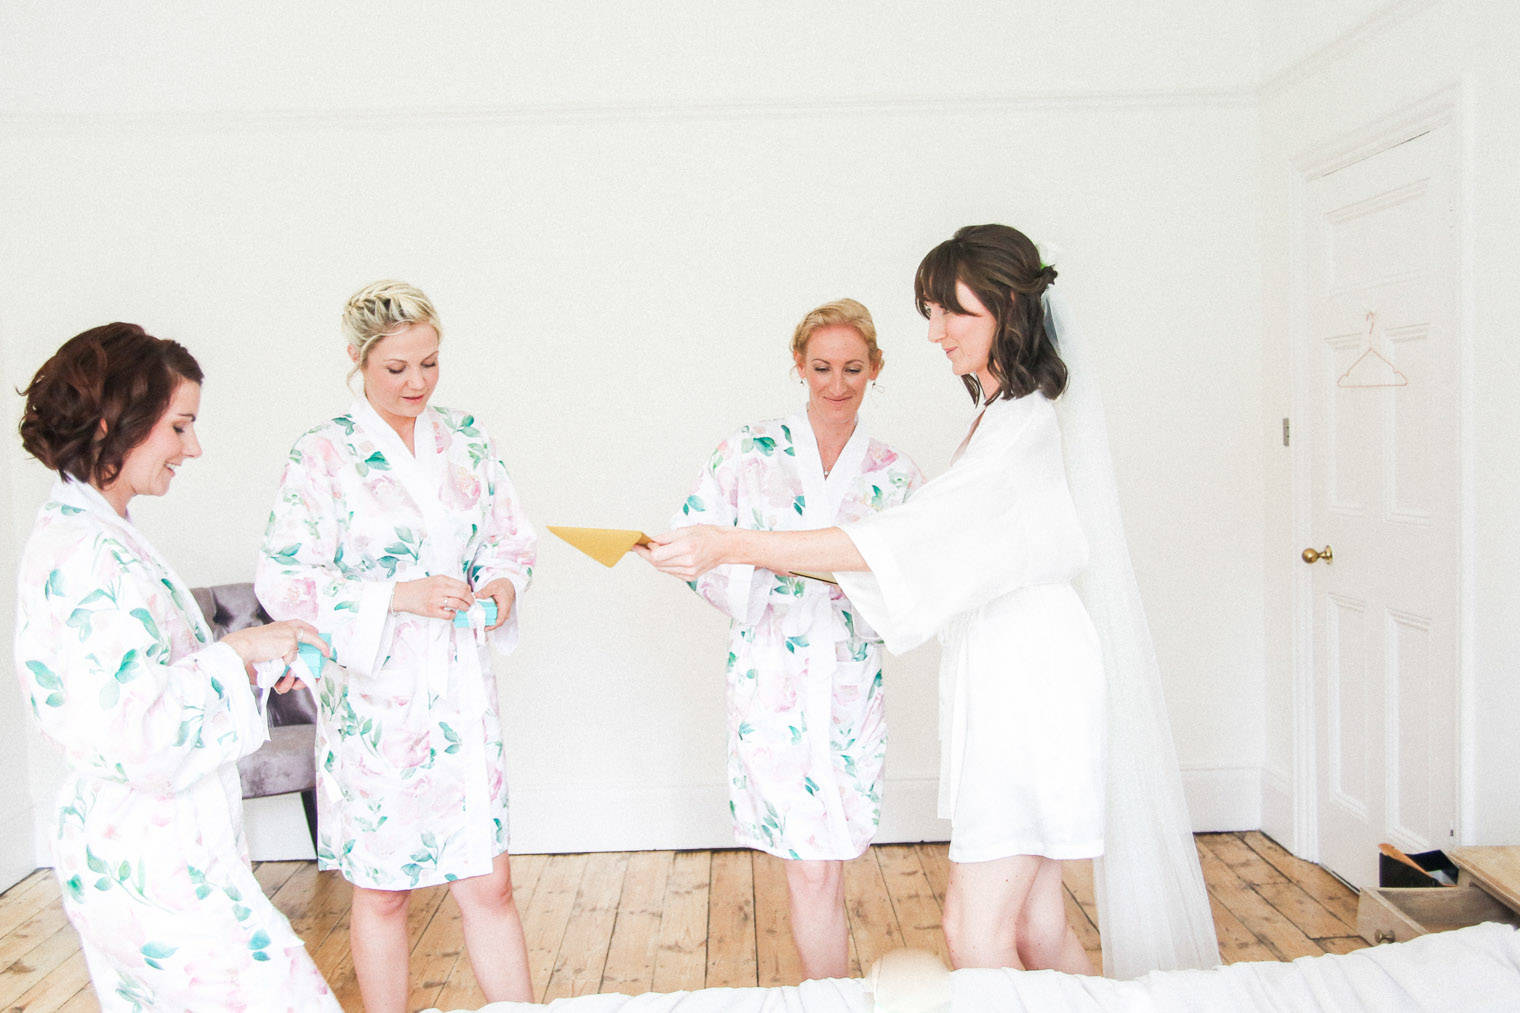 lifestyle-blogger-claire-wainwright-of-the-green-eyed-girl-shares-her-wedding-13